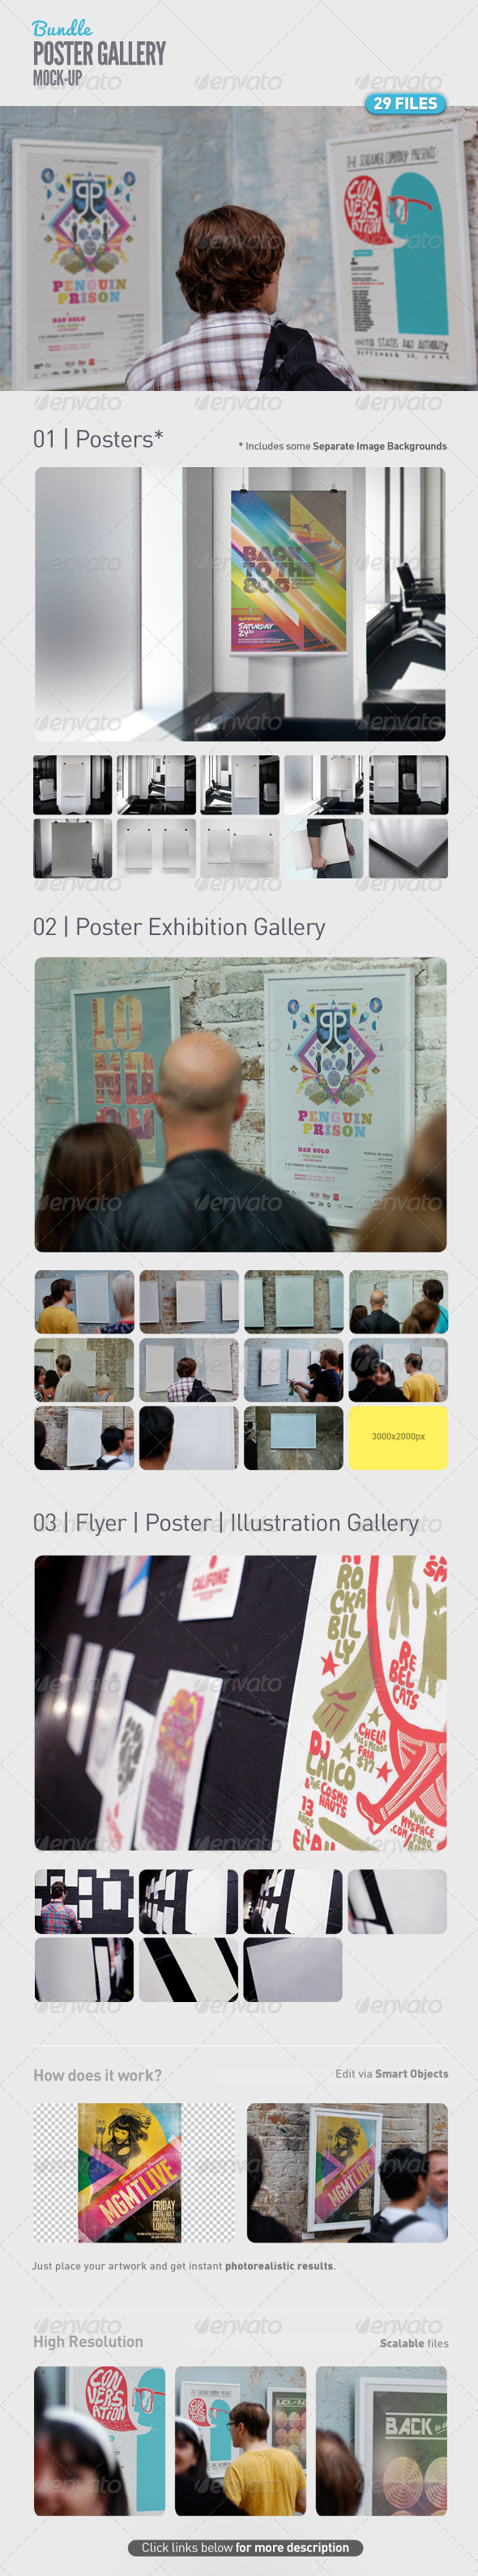 GraphicRiver Poster Gallery Mock-Up Bundle 5108495